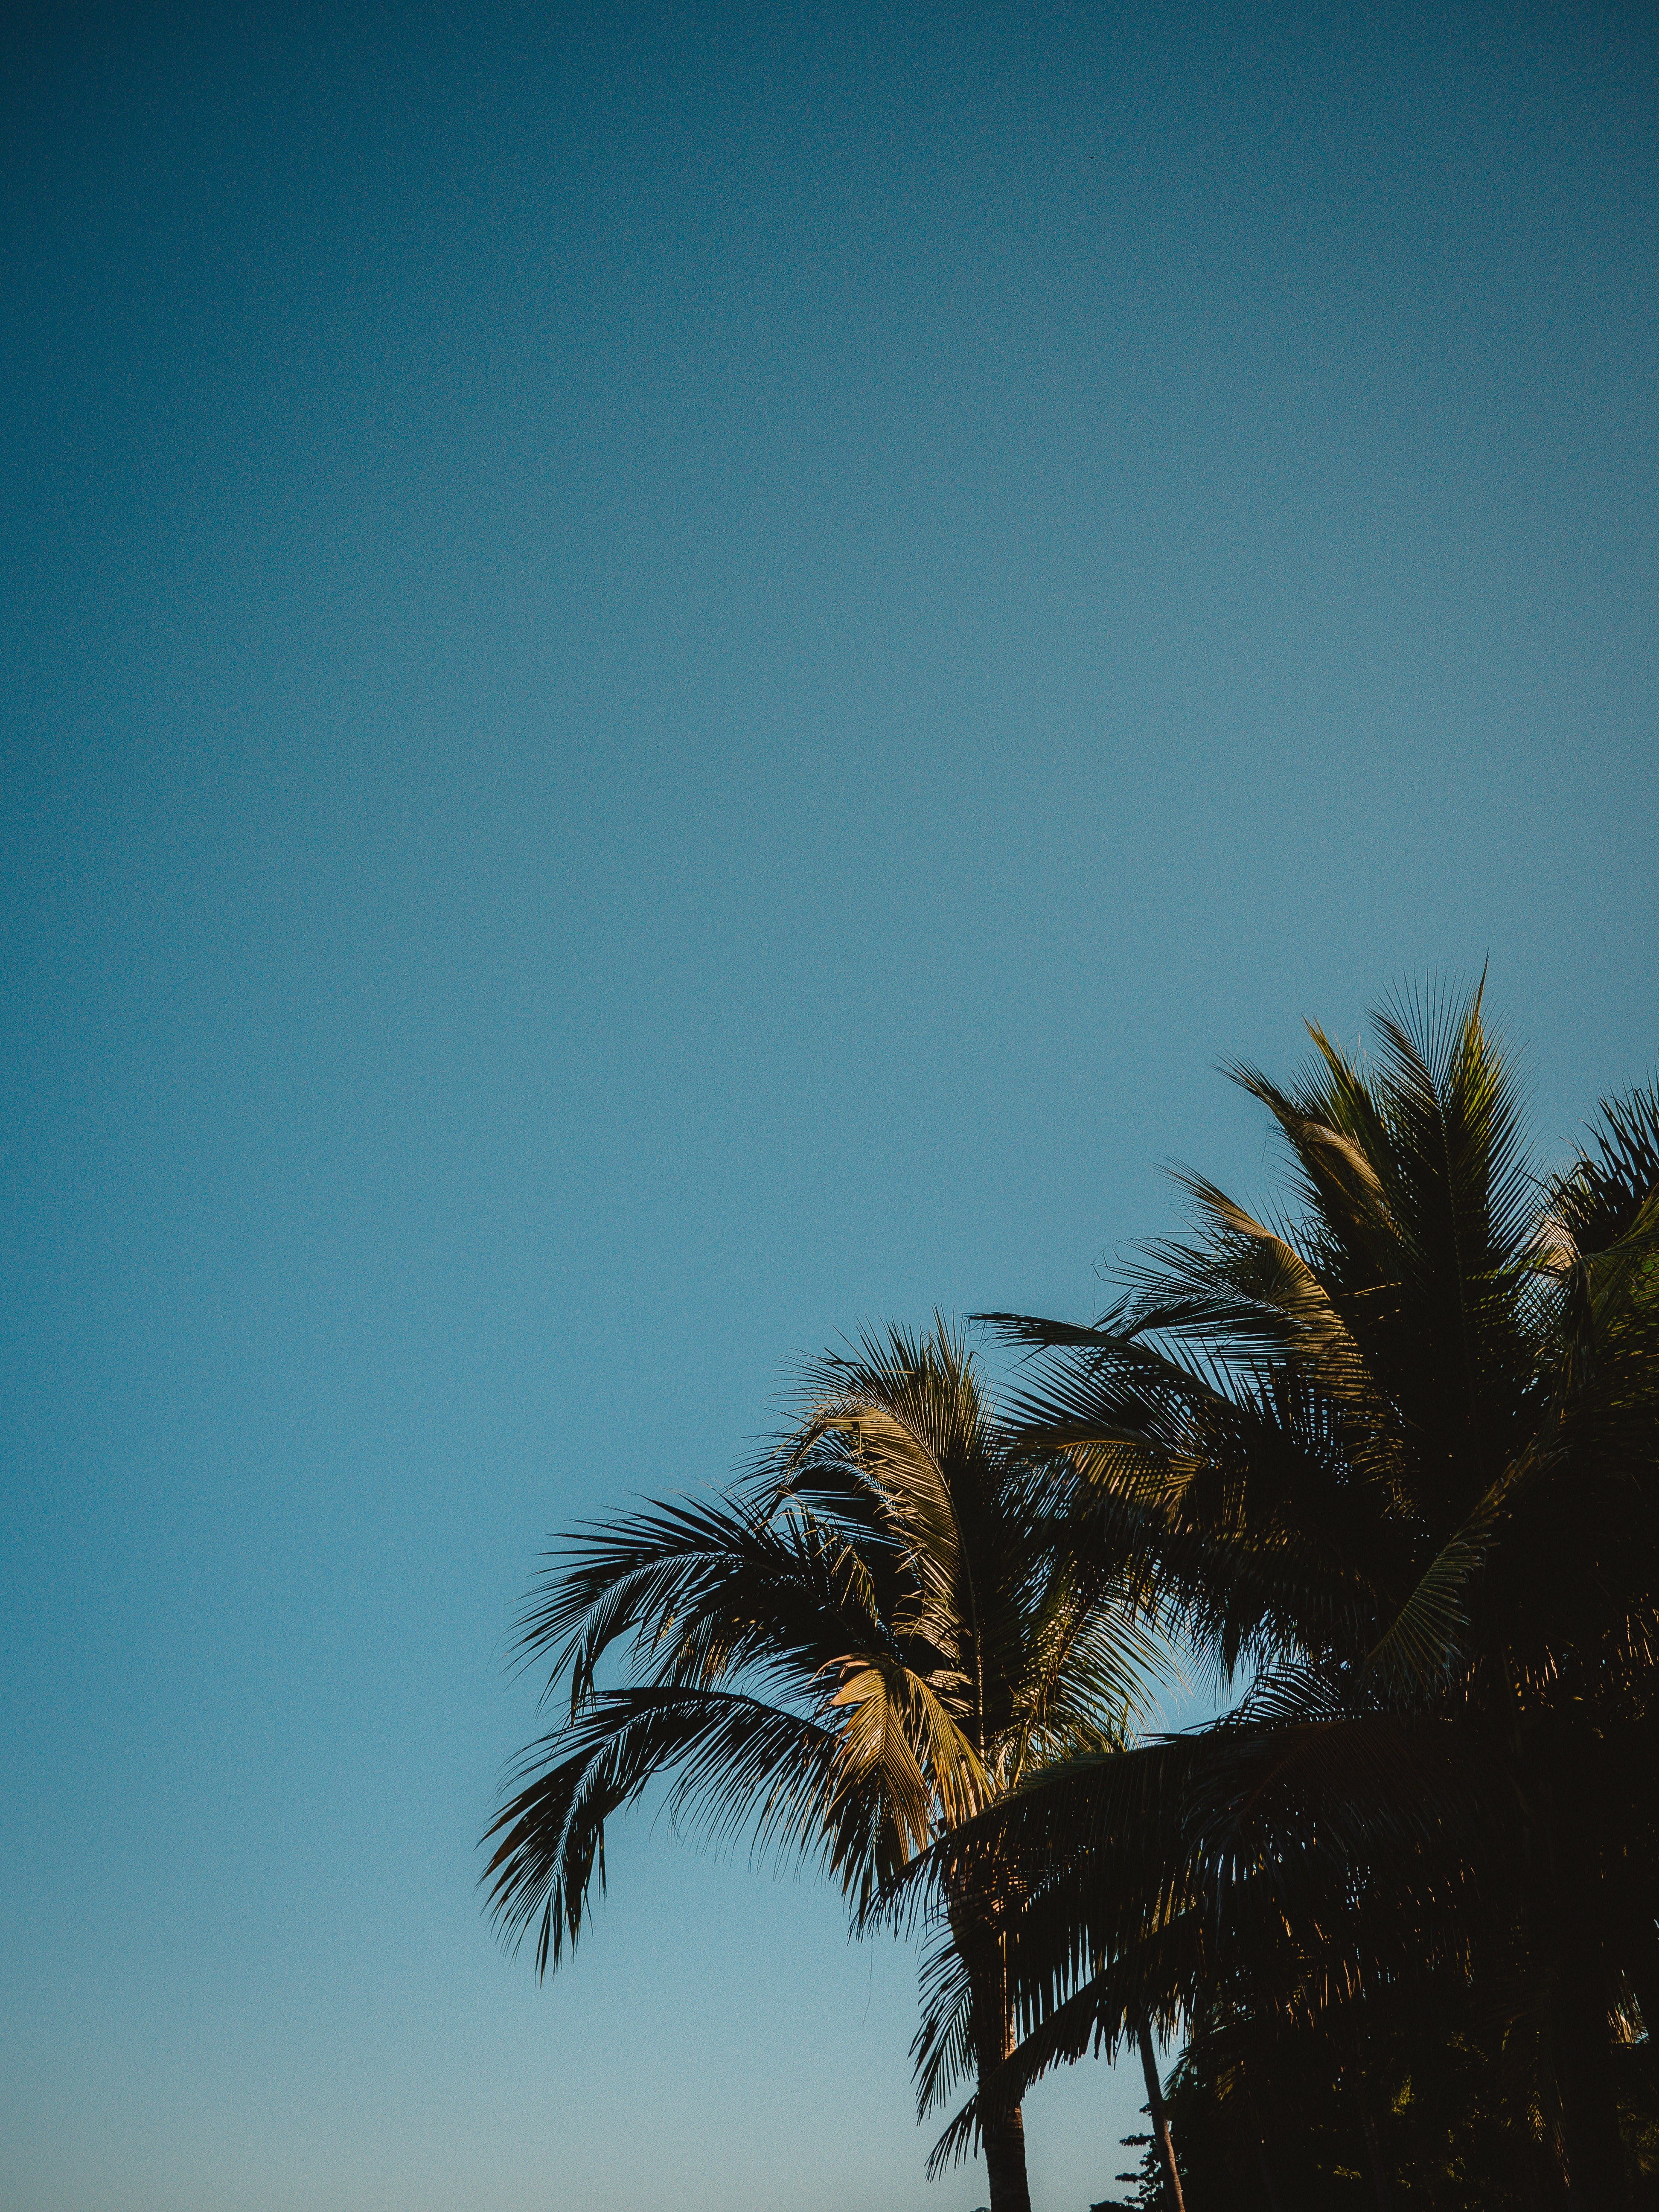 149757 download wallpaper Nature, Tops, Top, Branches, Sky, Tropics, Palms screensavers and pictures for free